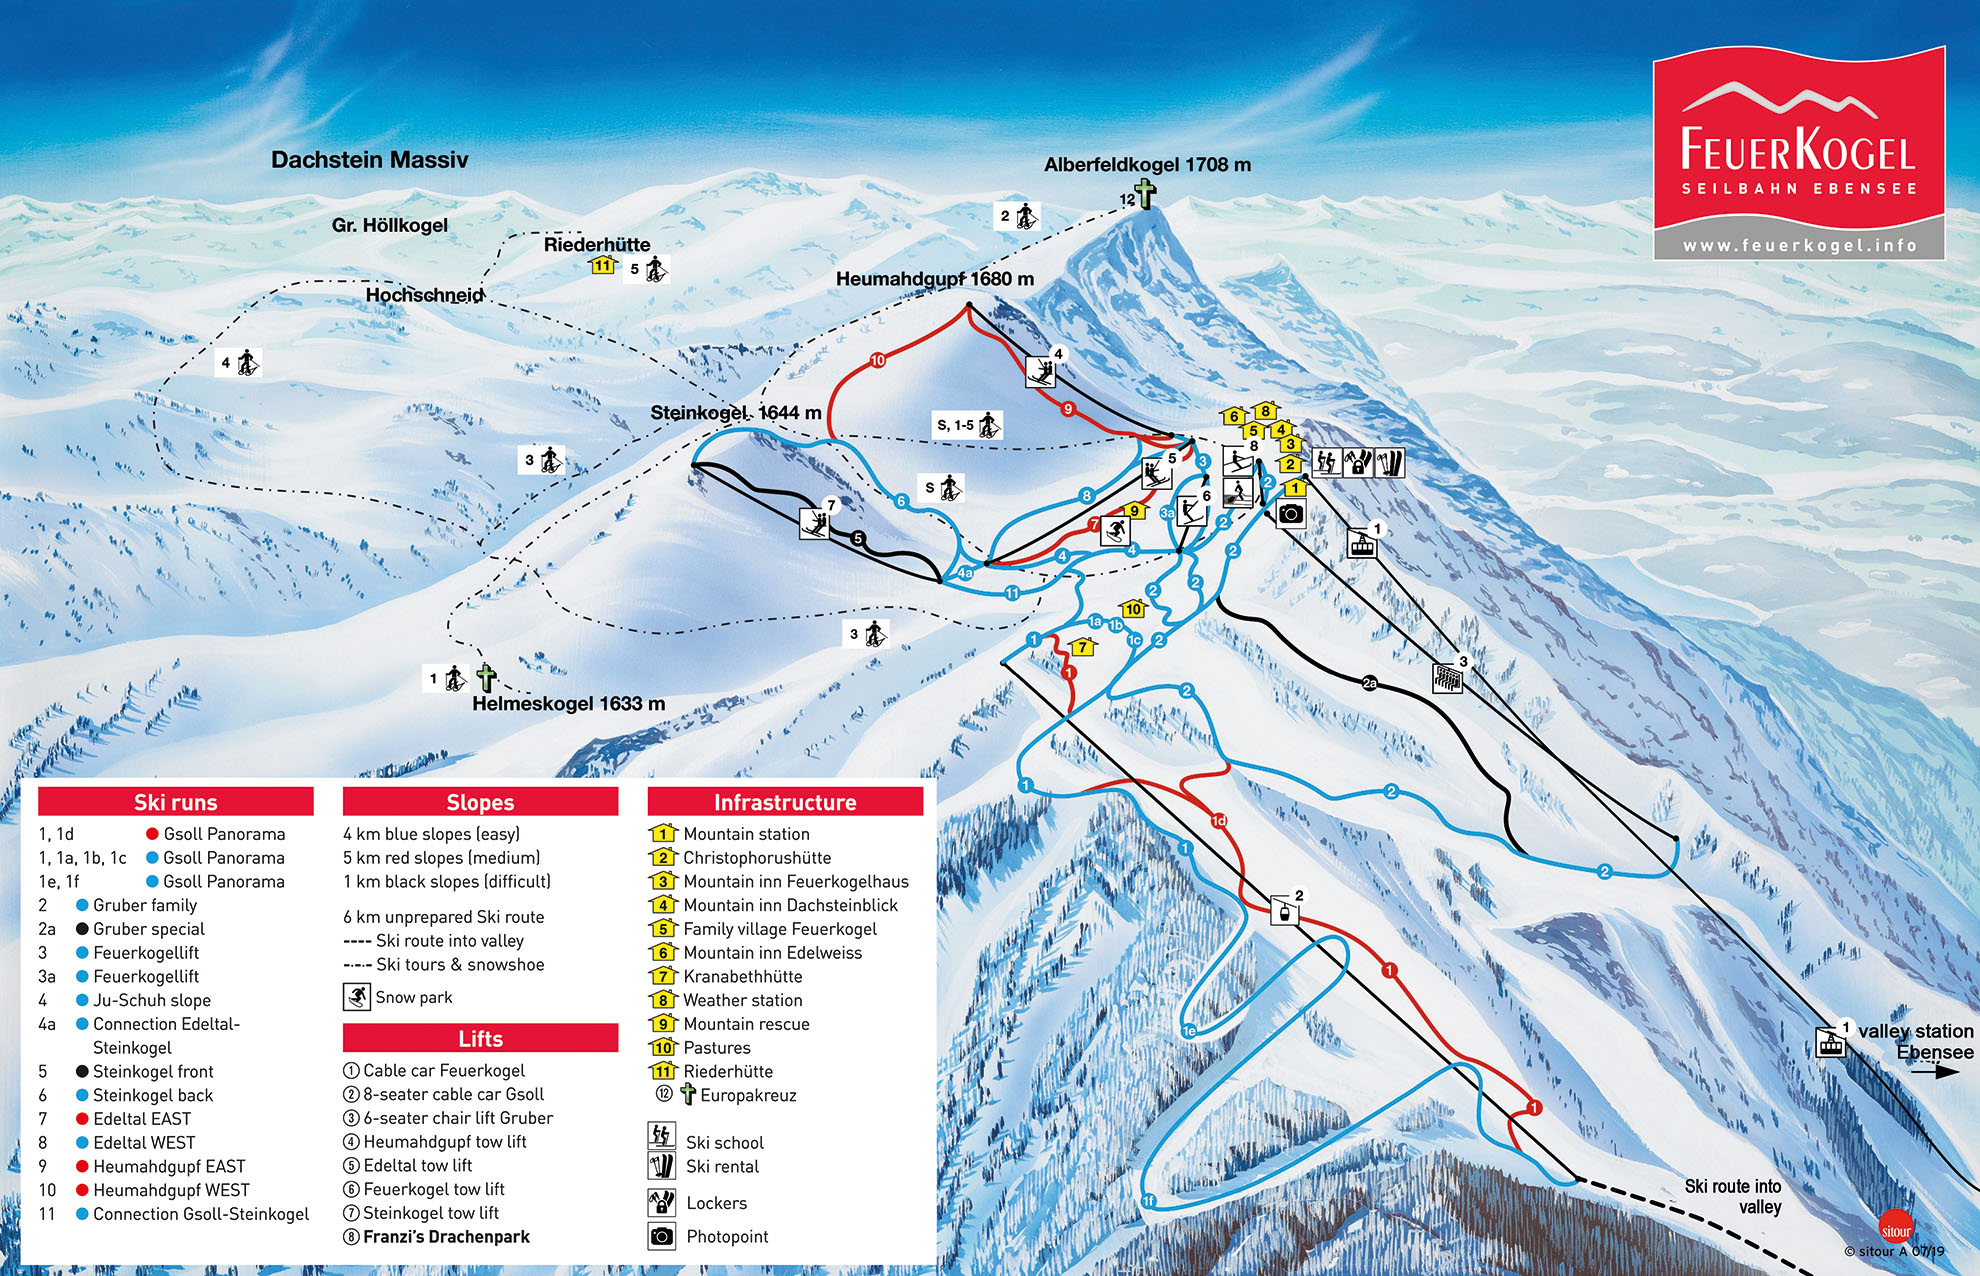 Ebensee am Traunsee Piste / Trail Map